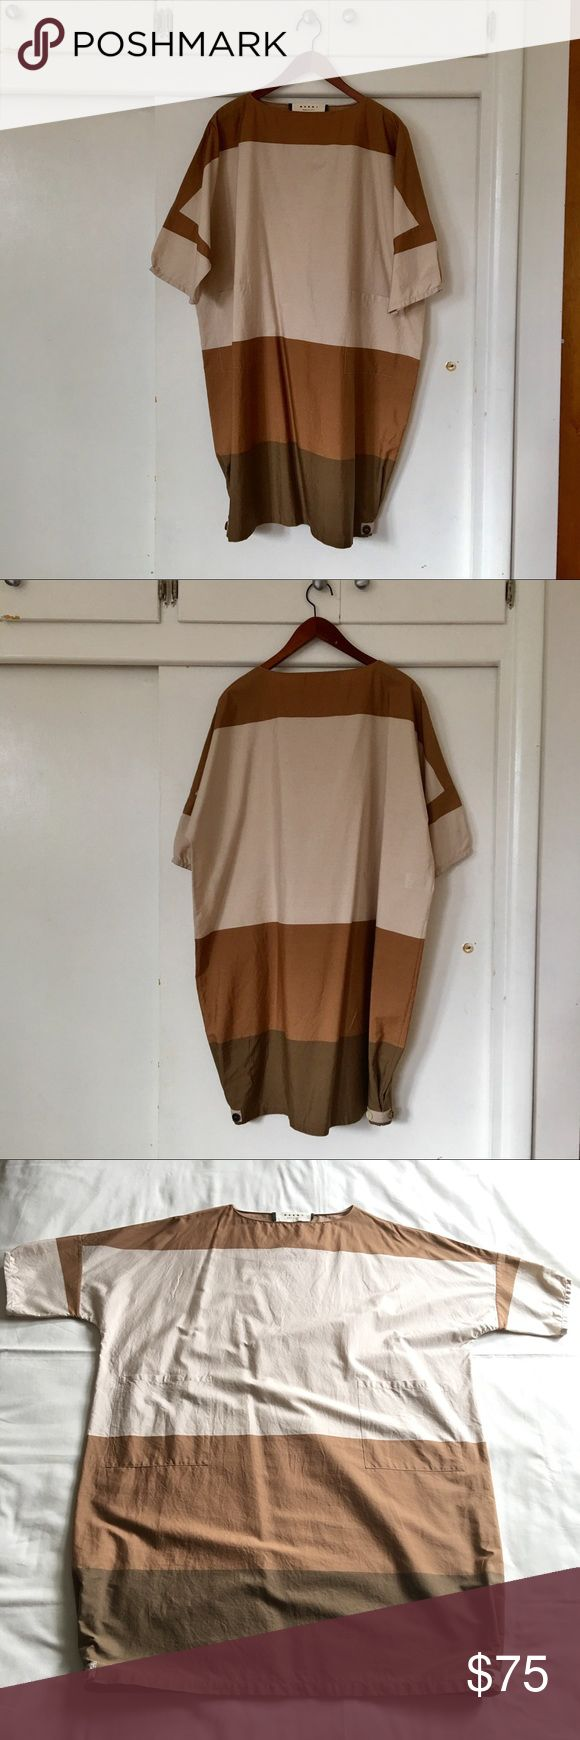 """Marni oversized dress ⚠️Price is firm, no offers accepted  Very good used condition without noticeable blemishes (worn just twice) Sleeve length altered, the end of sleeves and bottom hem sides got modified by me (I do sewing, make my clothes), originally everything had just straight cut Crisp high gauged quality lawn cotton fabric  Dual patched pockets Fairly narrow neck opening (approx 21.5"""" circumference) Italian size 40 27"""" bust, 38"""" length  Made in Italy Marni Dresses Midi"""